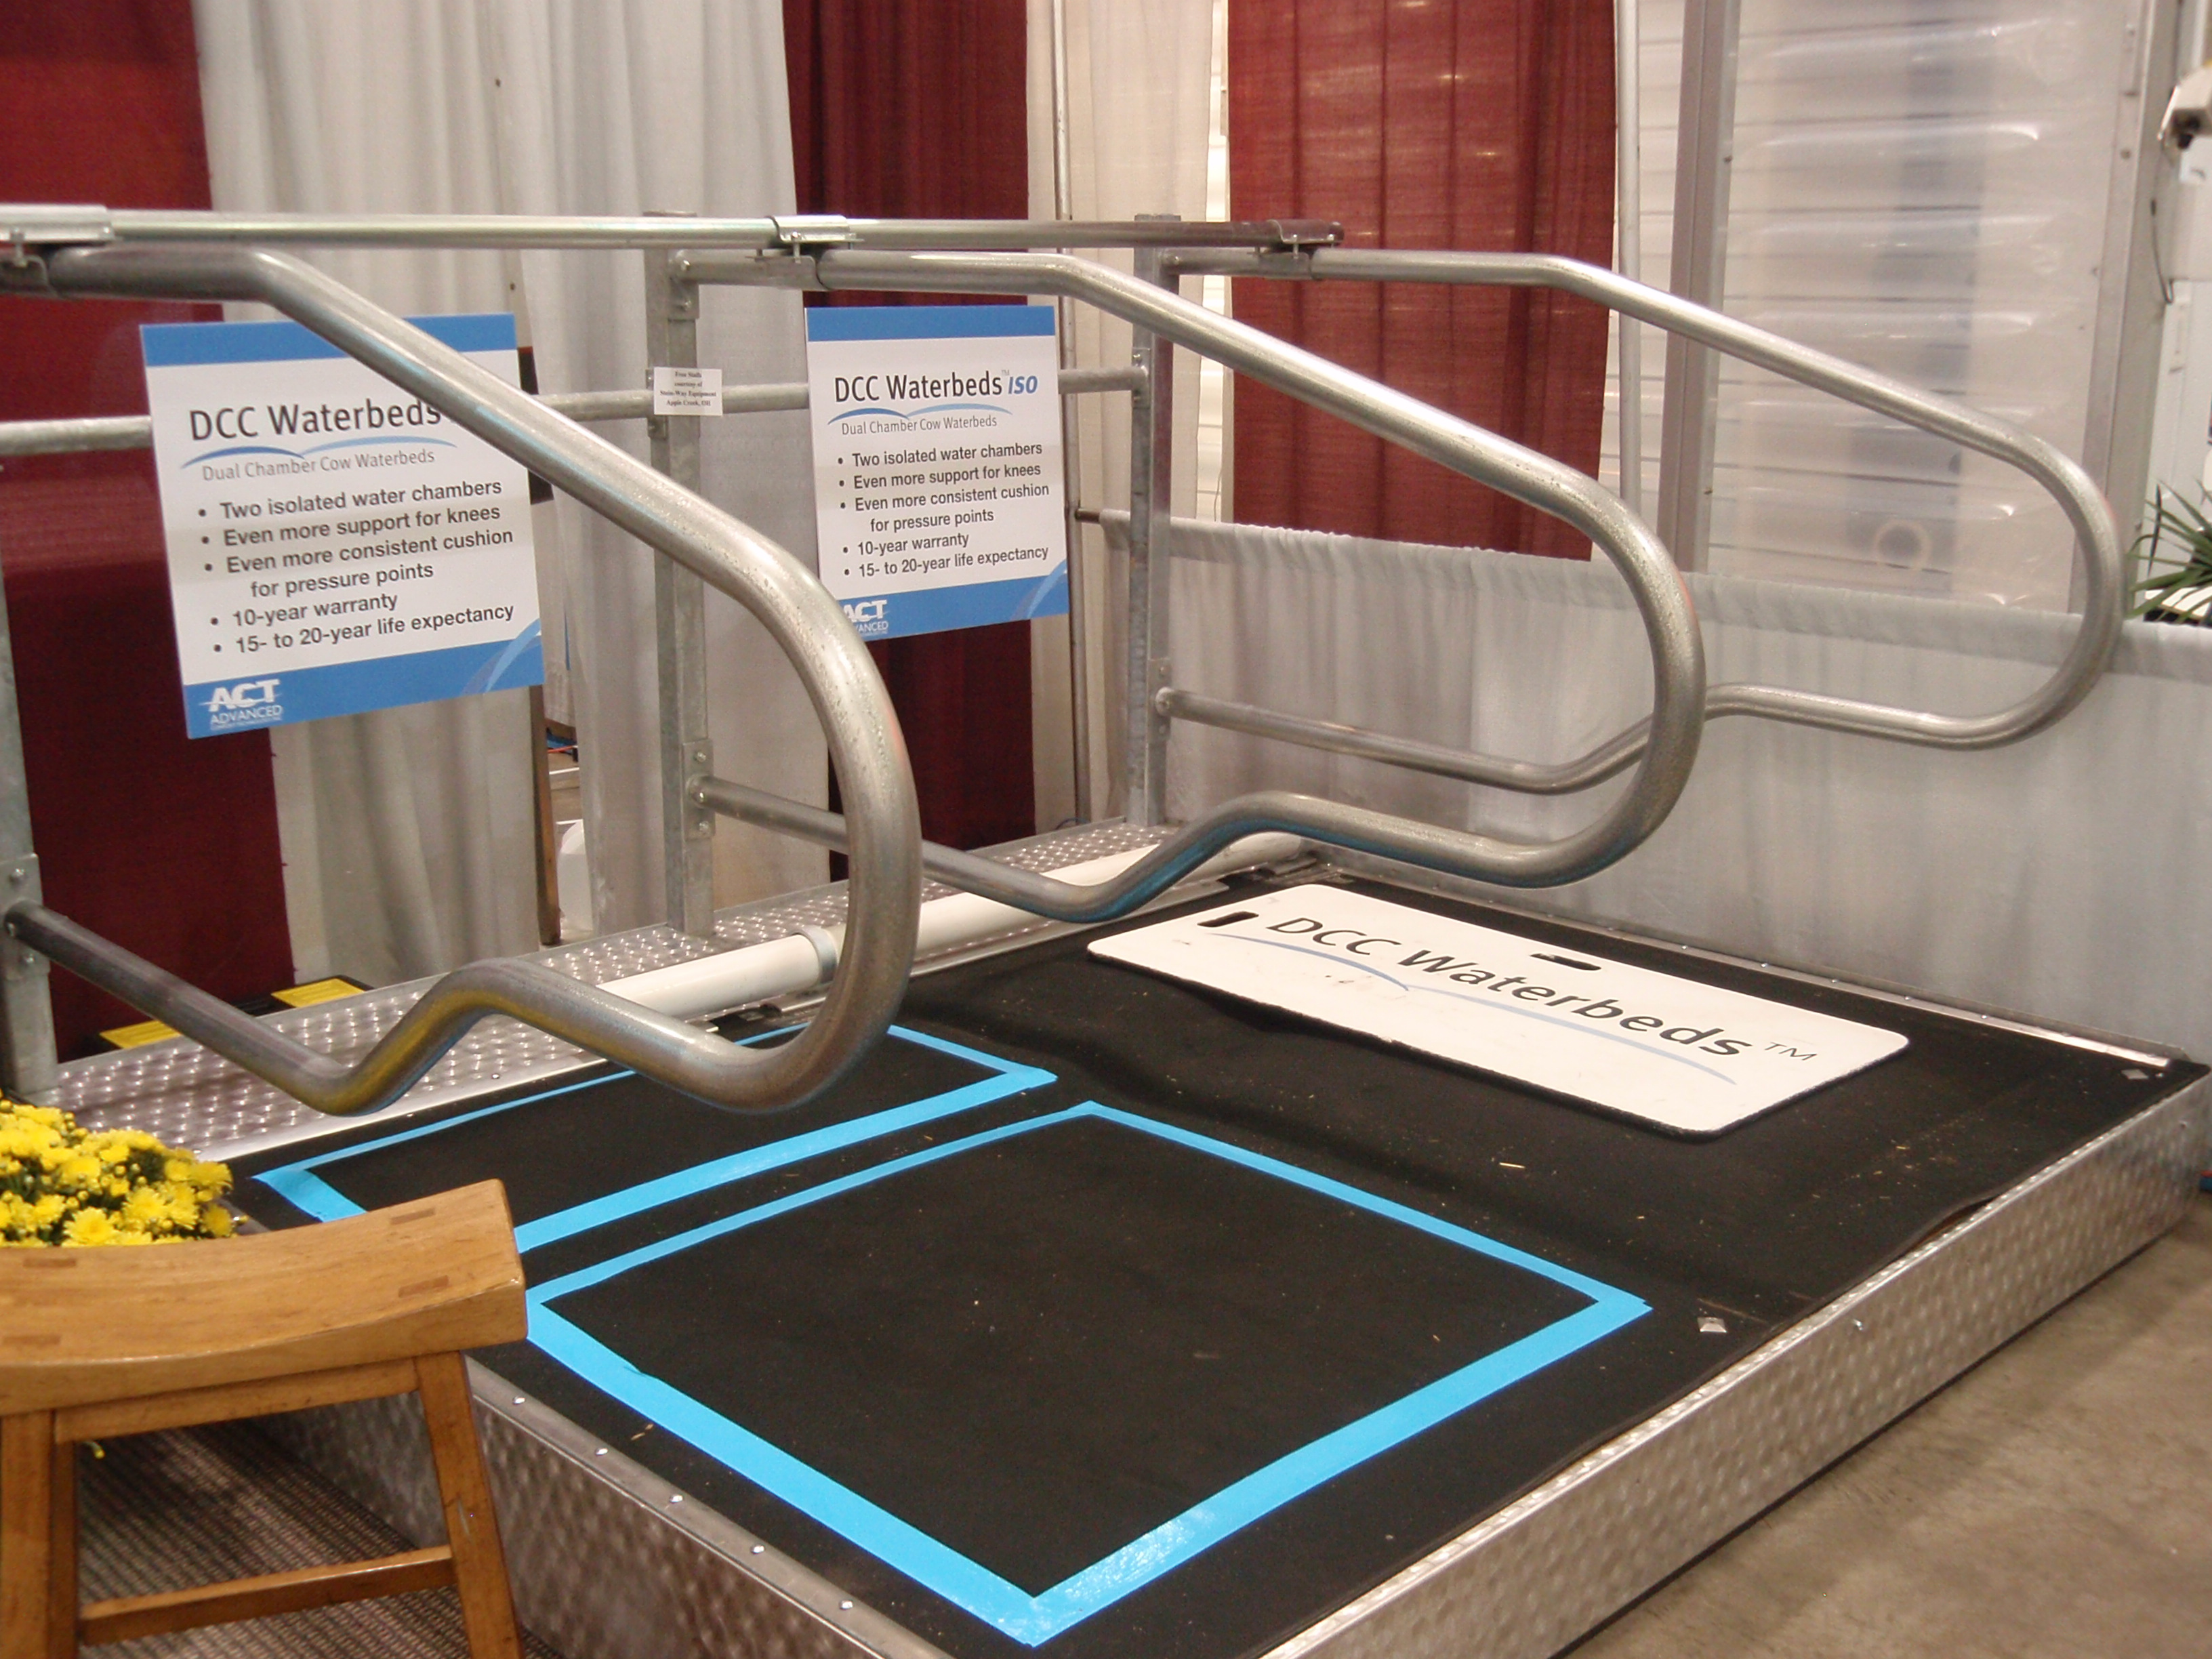 Browsing through the trade show, you can find everything including waterbeds for cows!